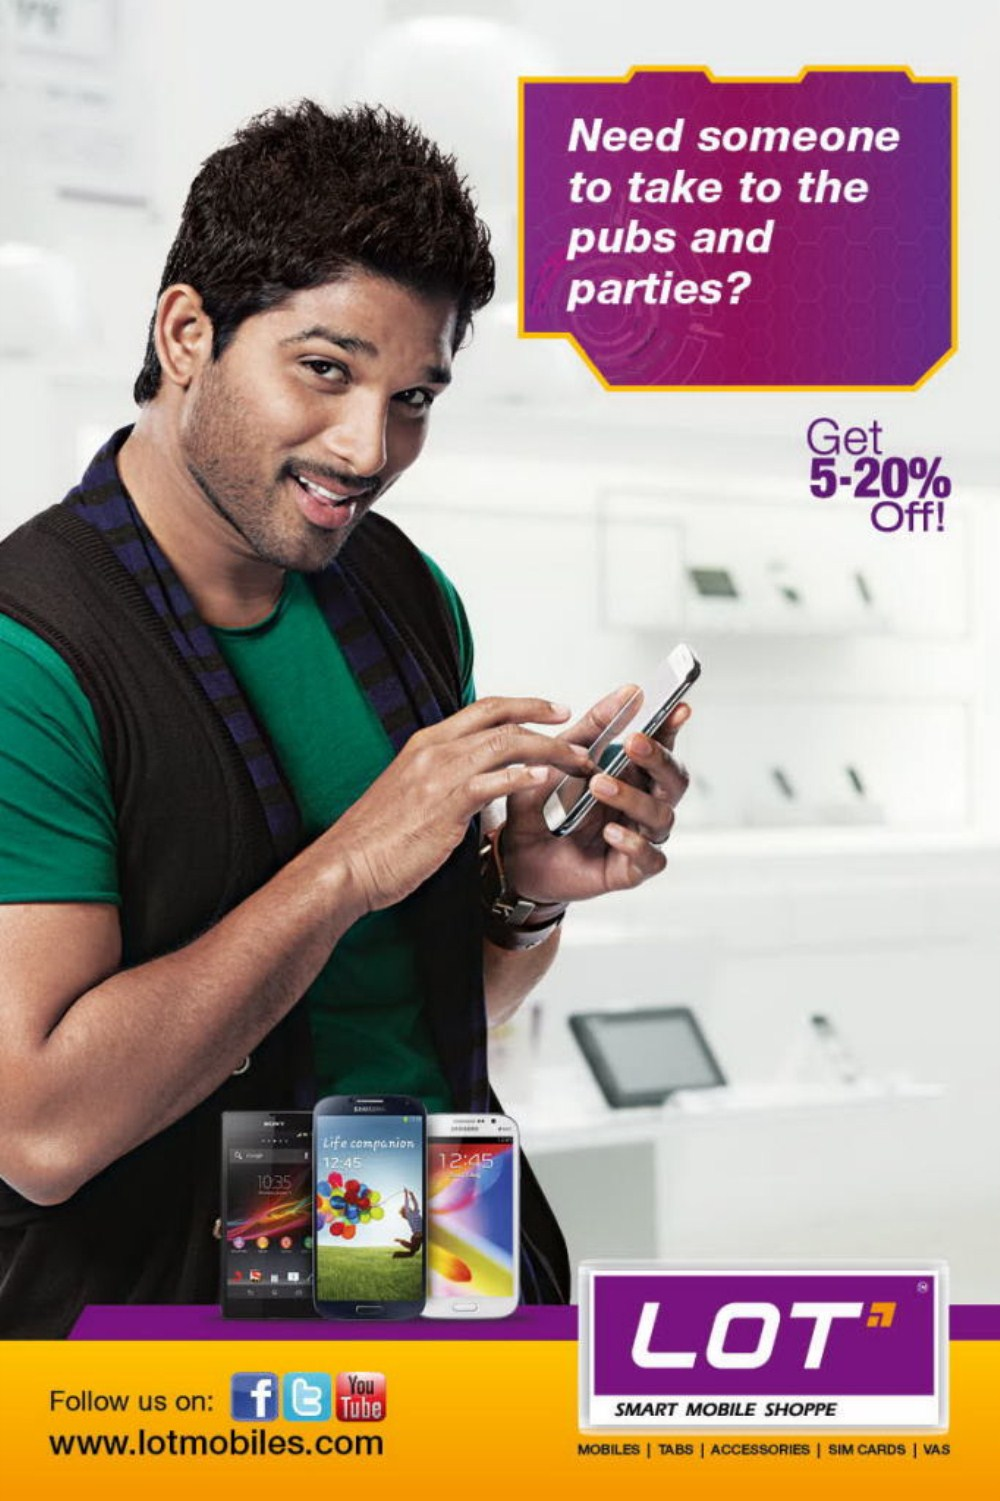 ... alu Arjun is endorsing this product, These are the latest Posters and